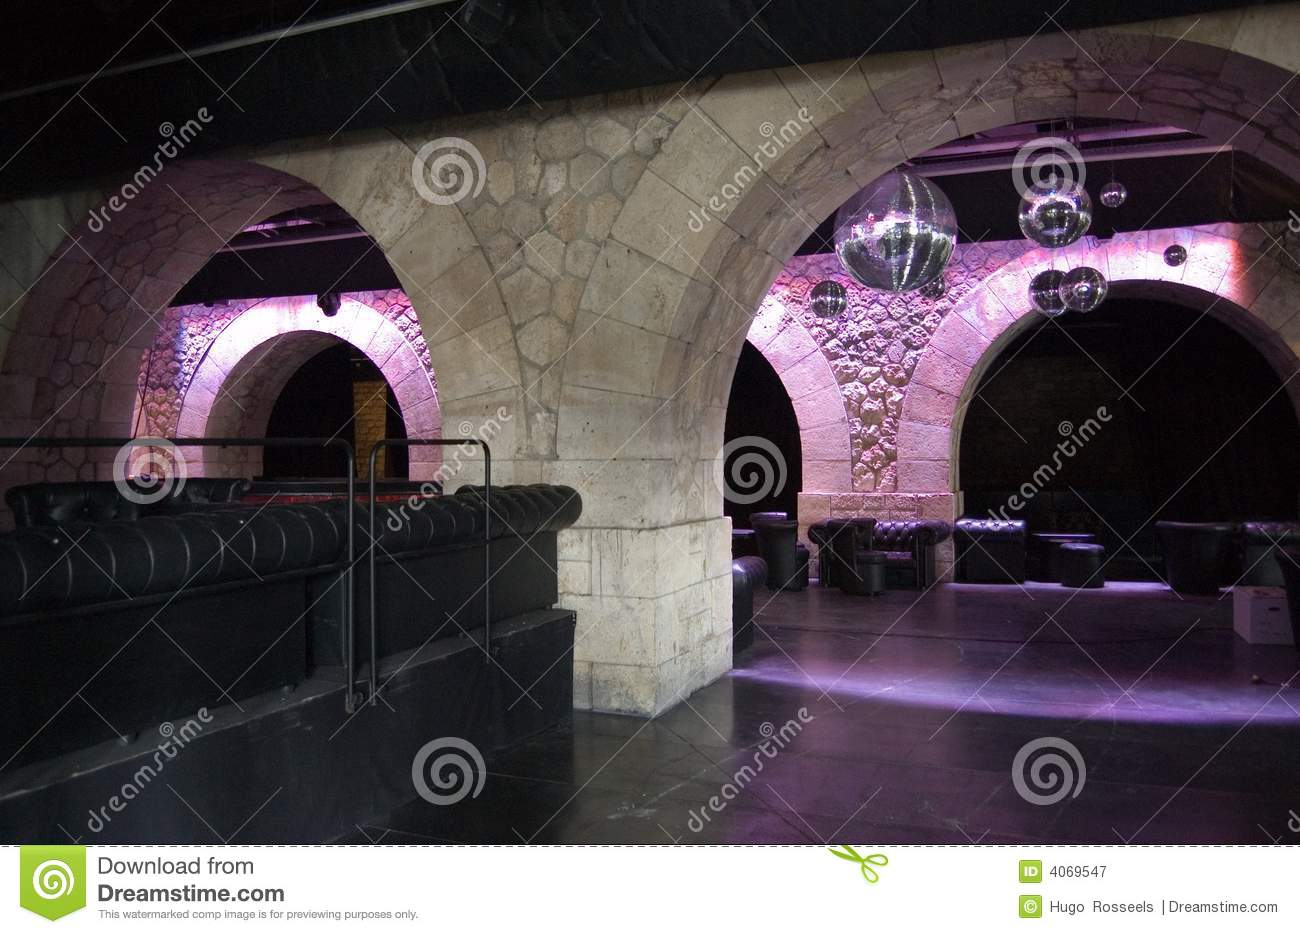 Paris Discotheque under the bridge